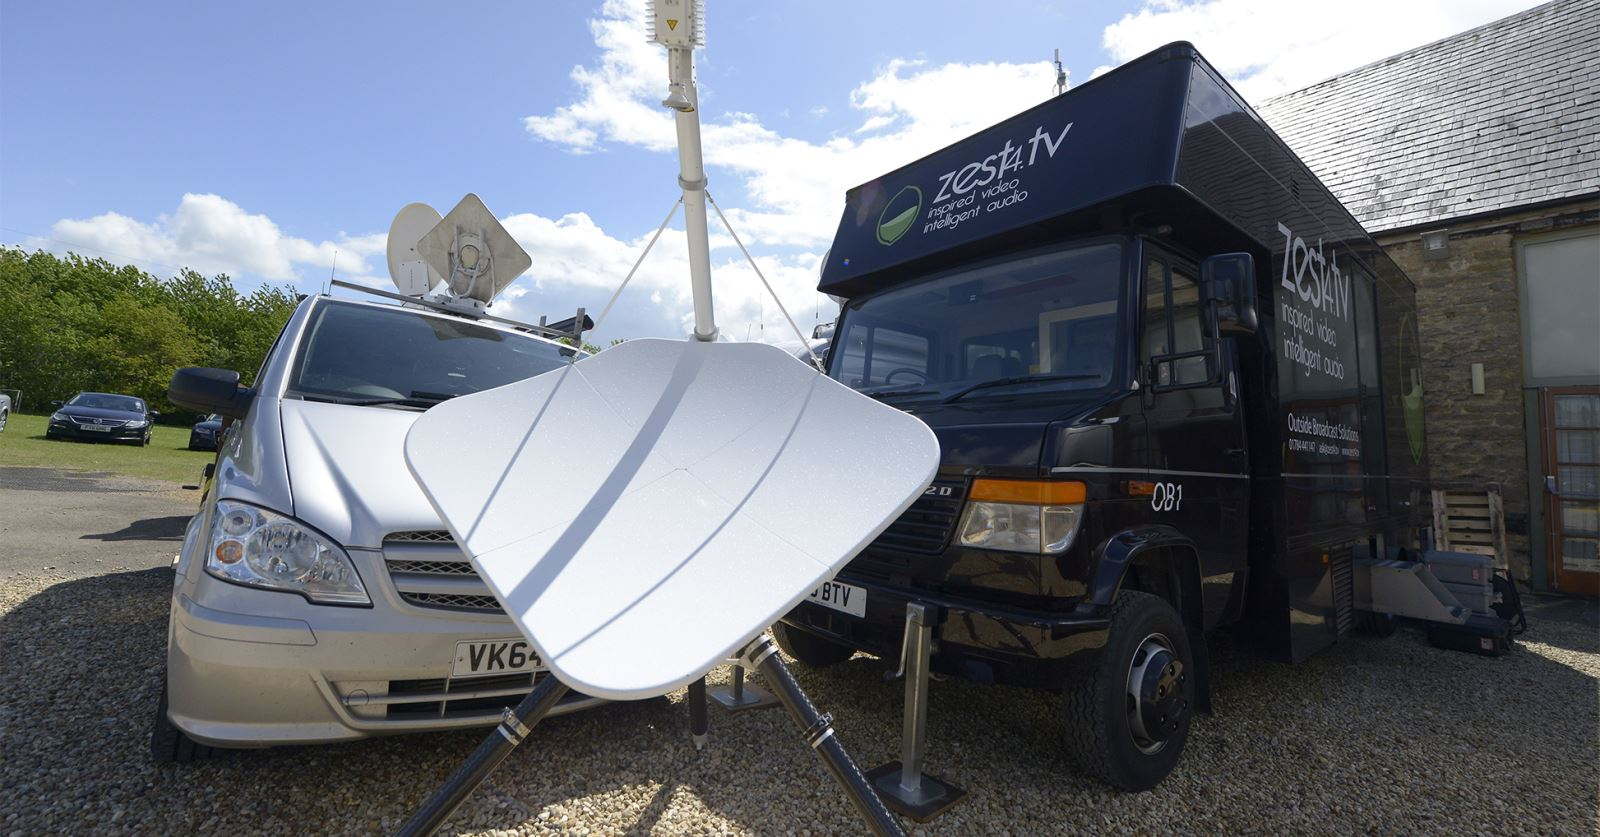 SNG Broadcast and Zest4TV trucks set and ready for live streaming the GTC Awards tonigh - watch the live stream